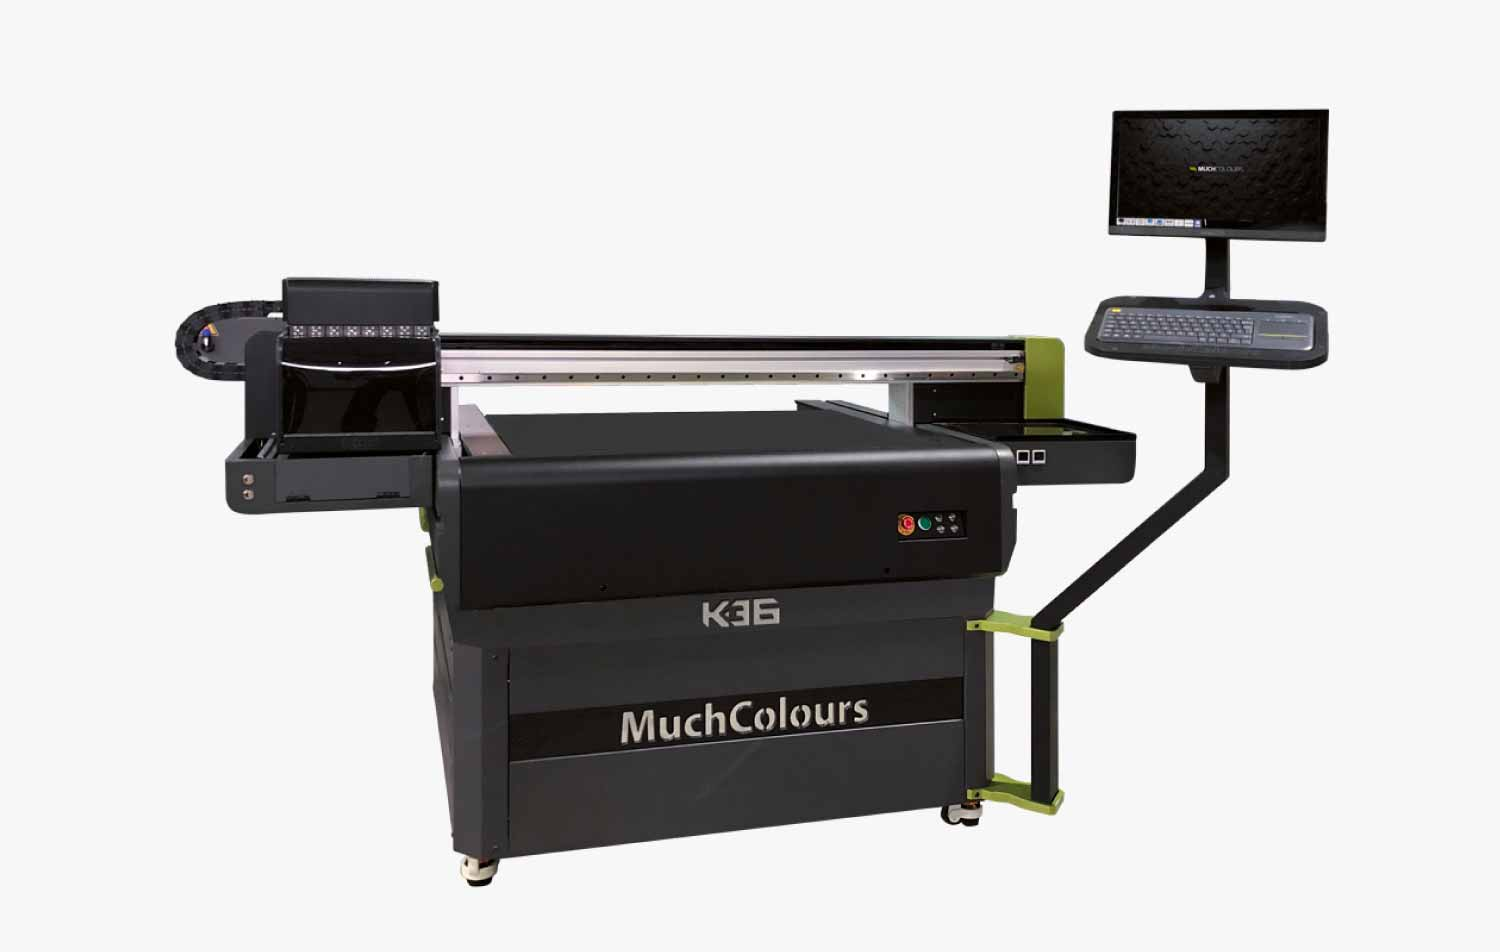 much-colours-k36